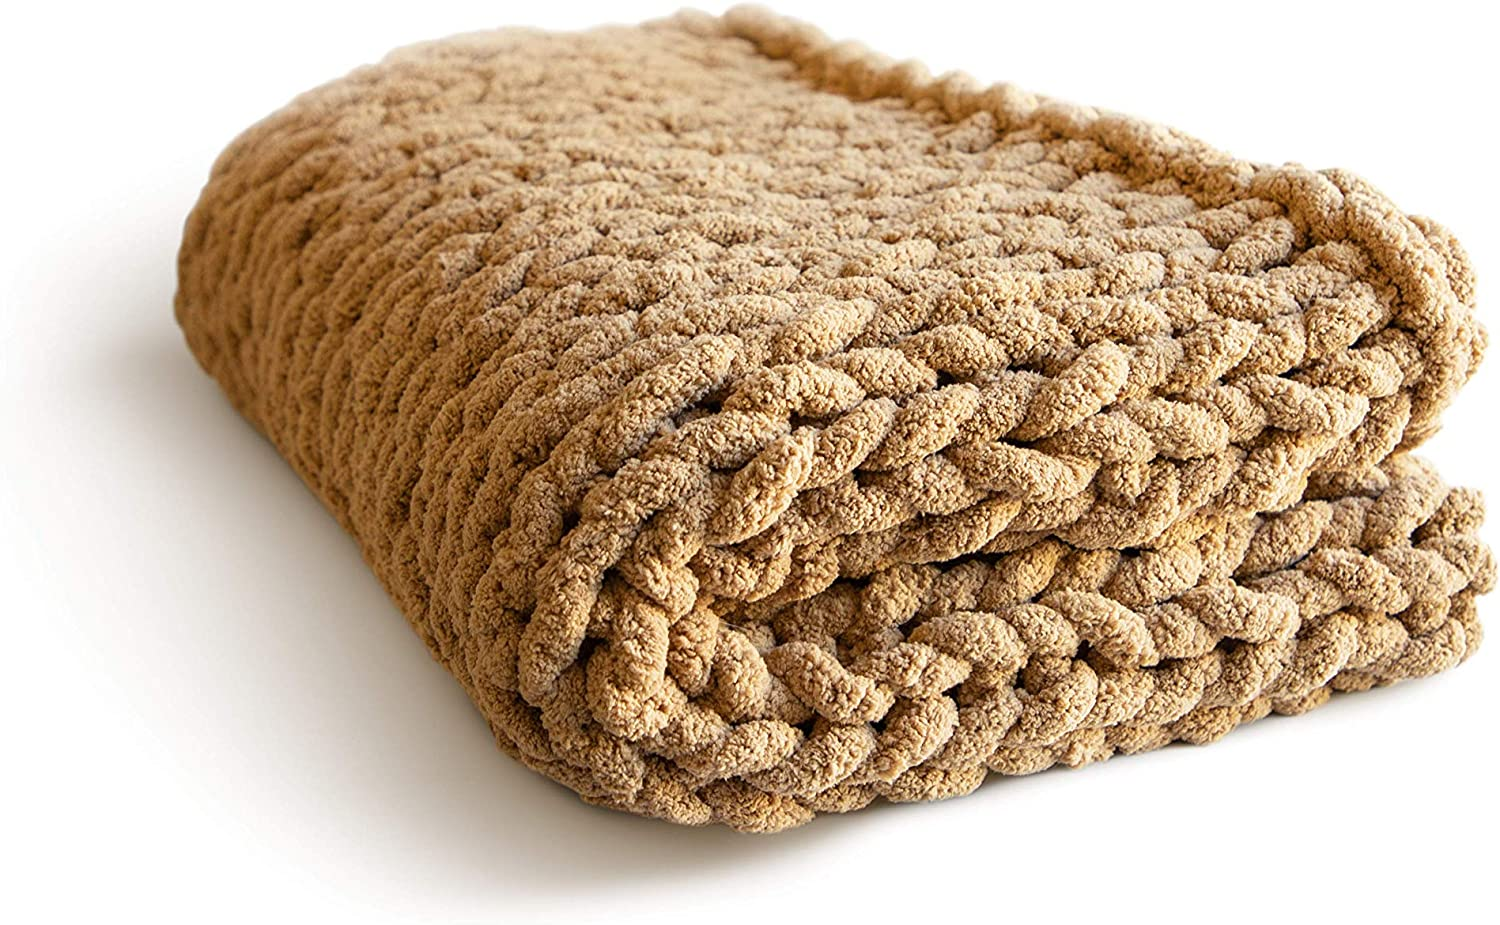 """MONKSIE Luxury Chunky Knit Blanket with Plush Chenille Knitted Fabric, 47"""" x 59"""", Soft and Warm Decorative Throw for Living Room, Bedroom, and Home Decor (Camel Brown)"""